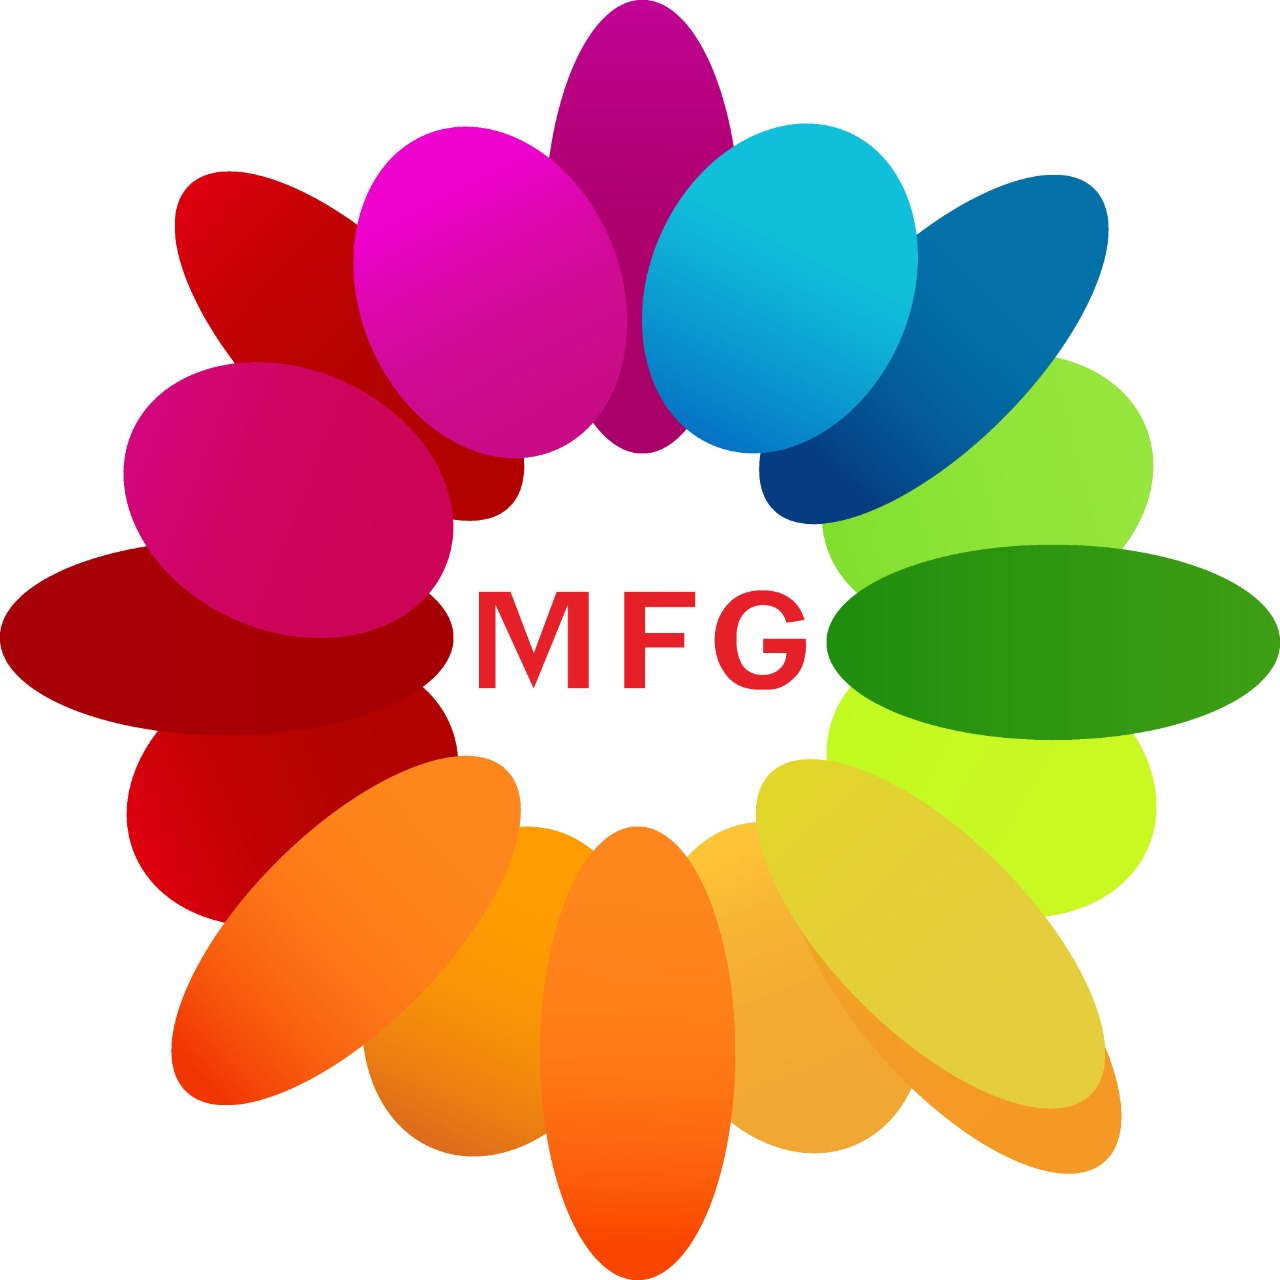 Beautiful hand bouquet of 10 lilies in pink and white combination can be the best choice